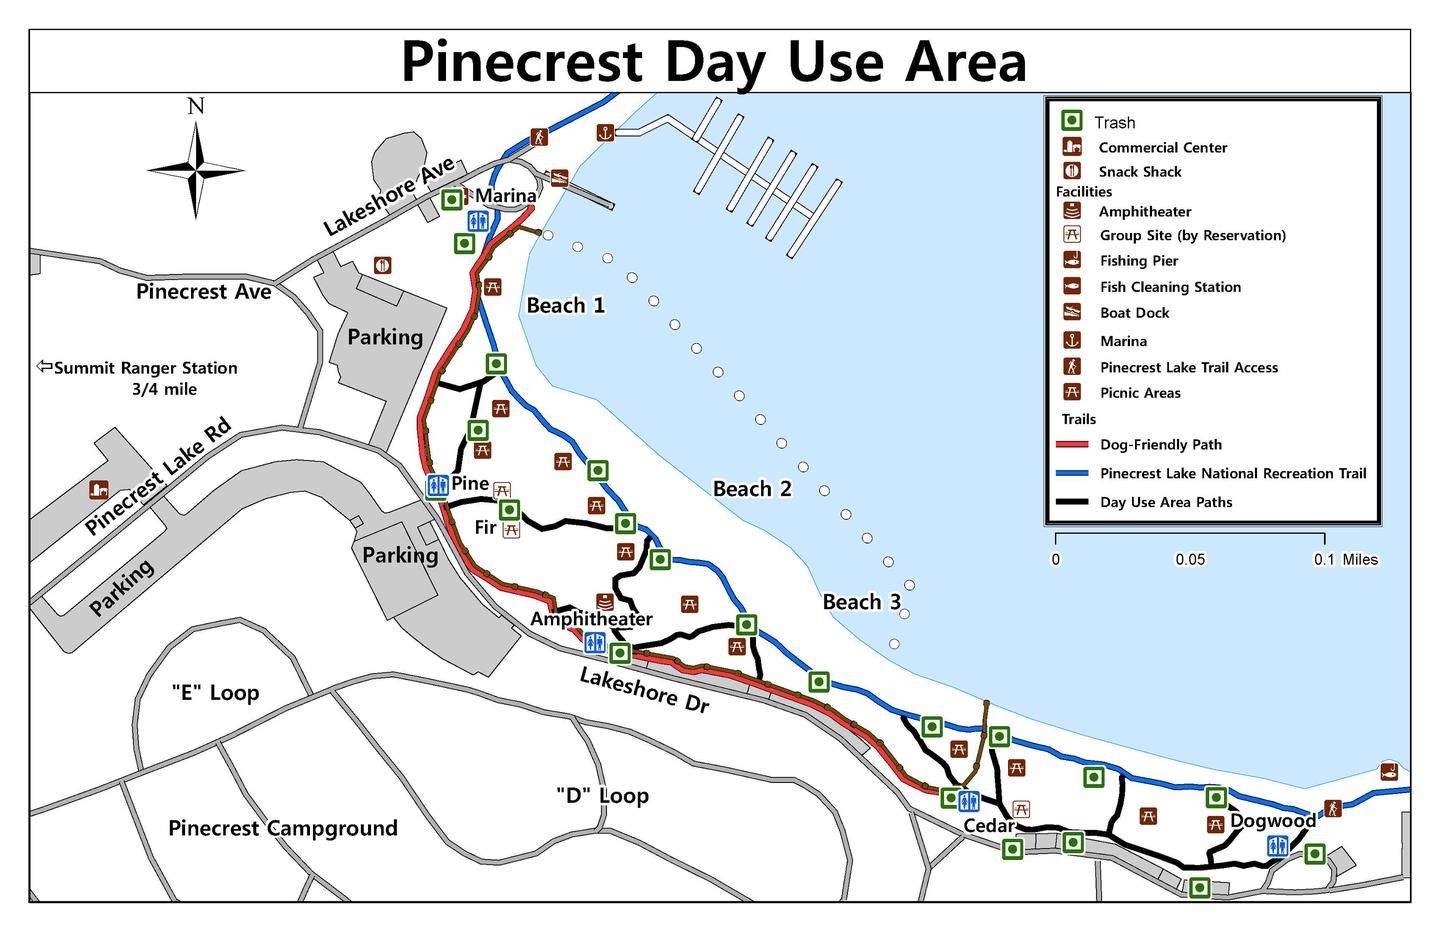 Map of the Pinecrest Day Use Area